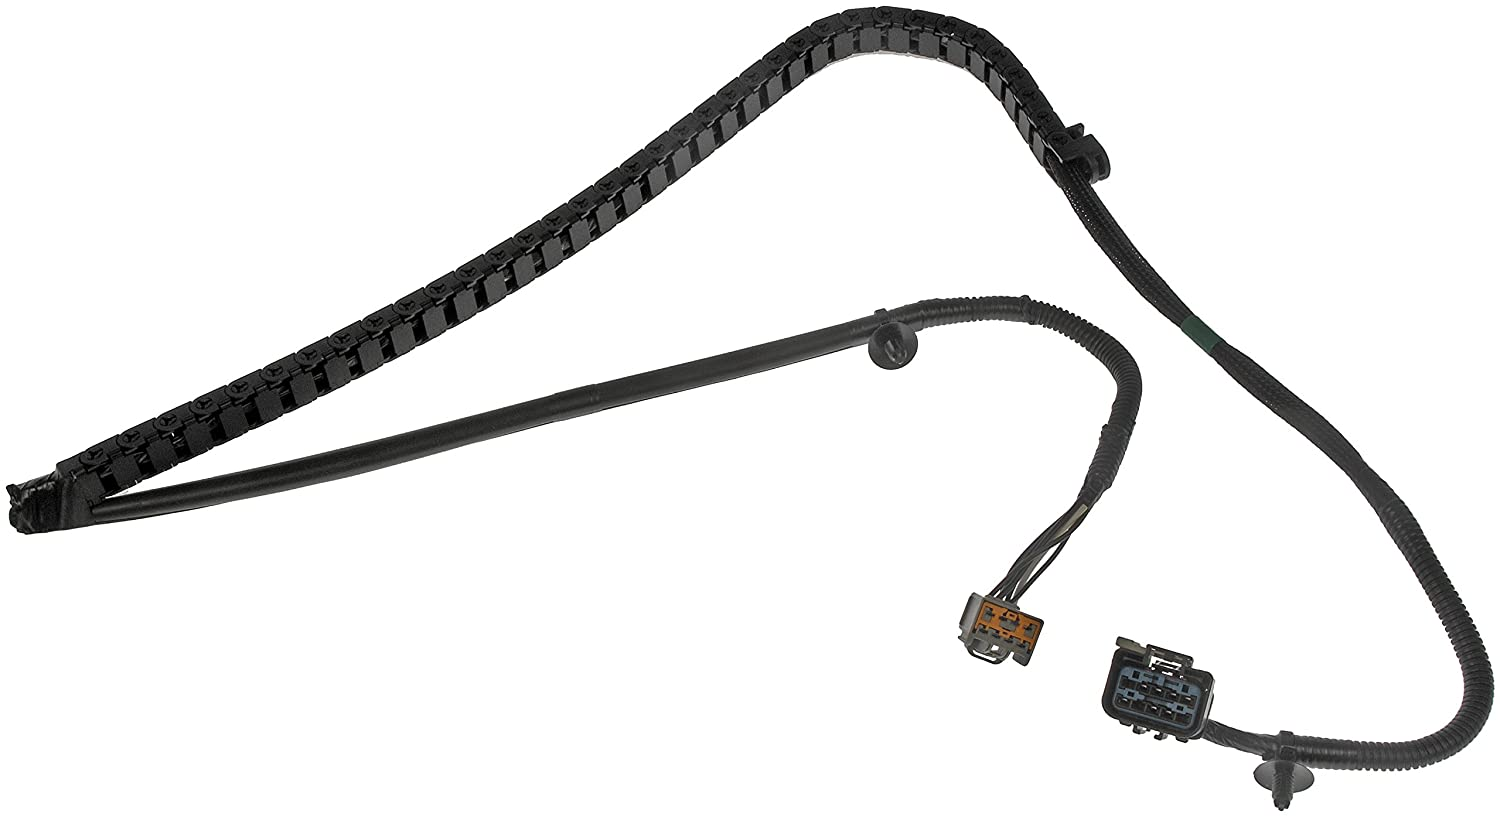 71%2B72I0QwkL._SL1500_ amazon com dorman 747 311 passenger side sliding door harness dorman wiring harness at edmiracle.co